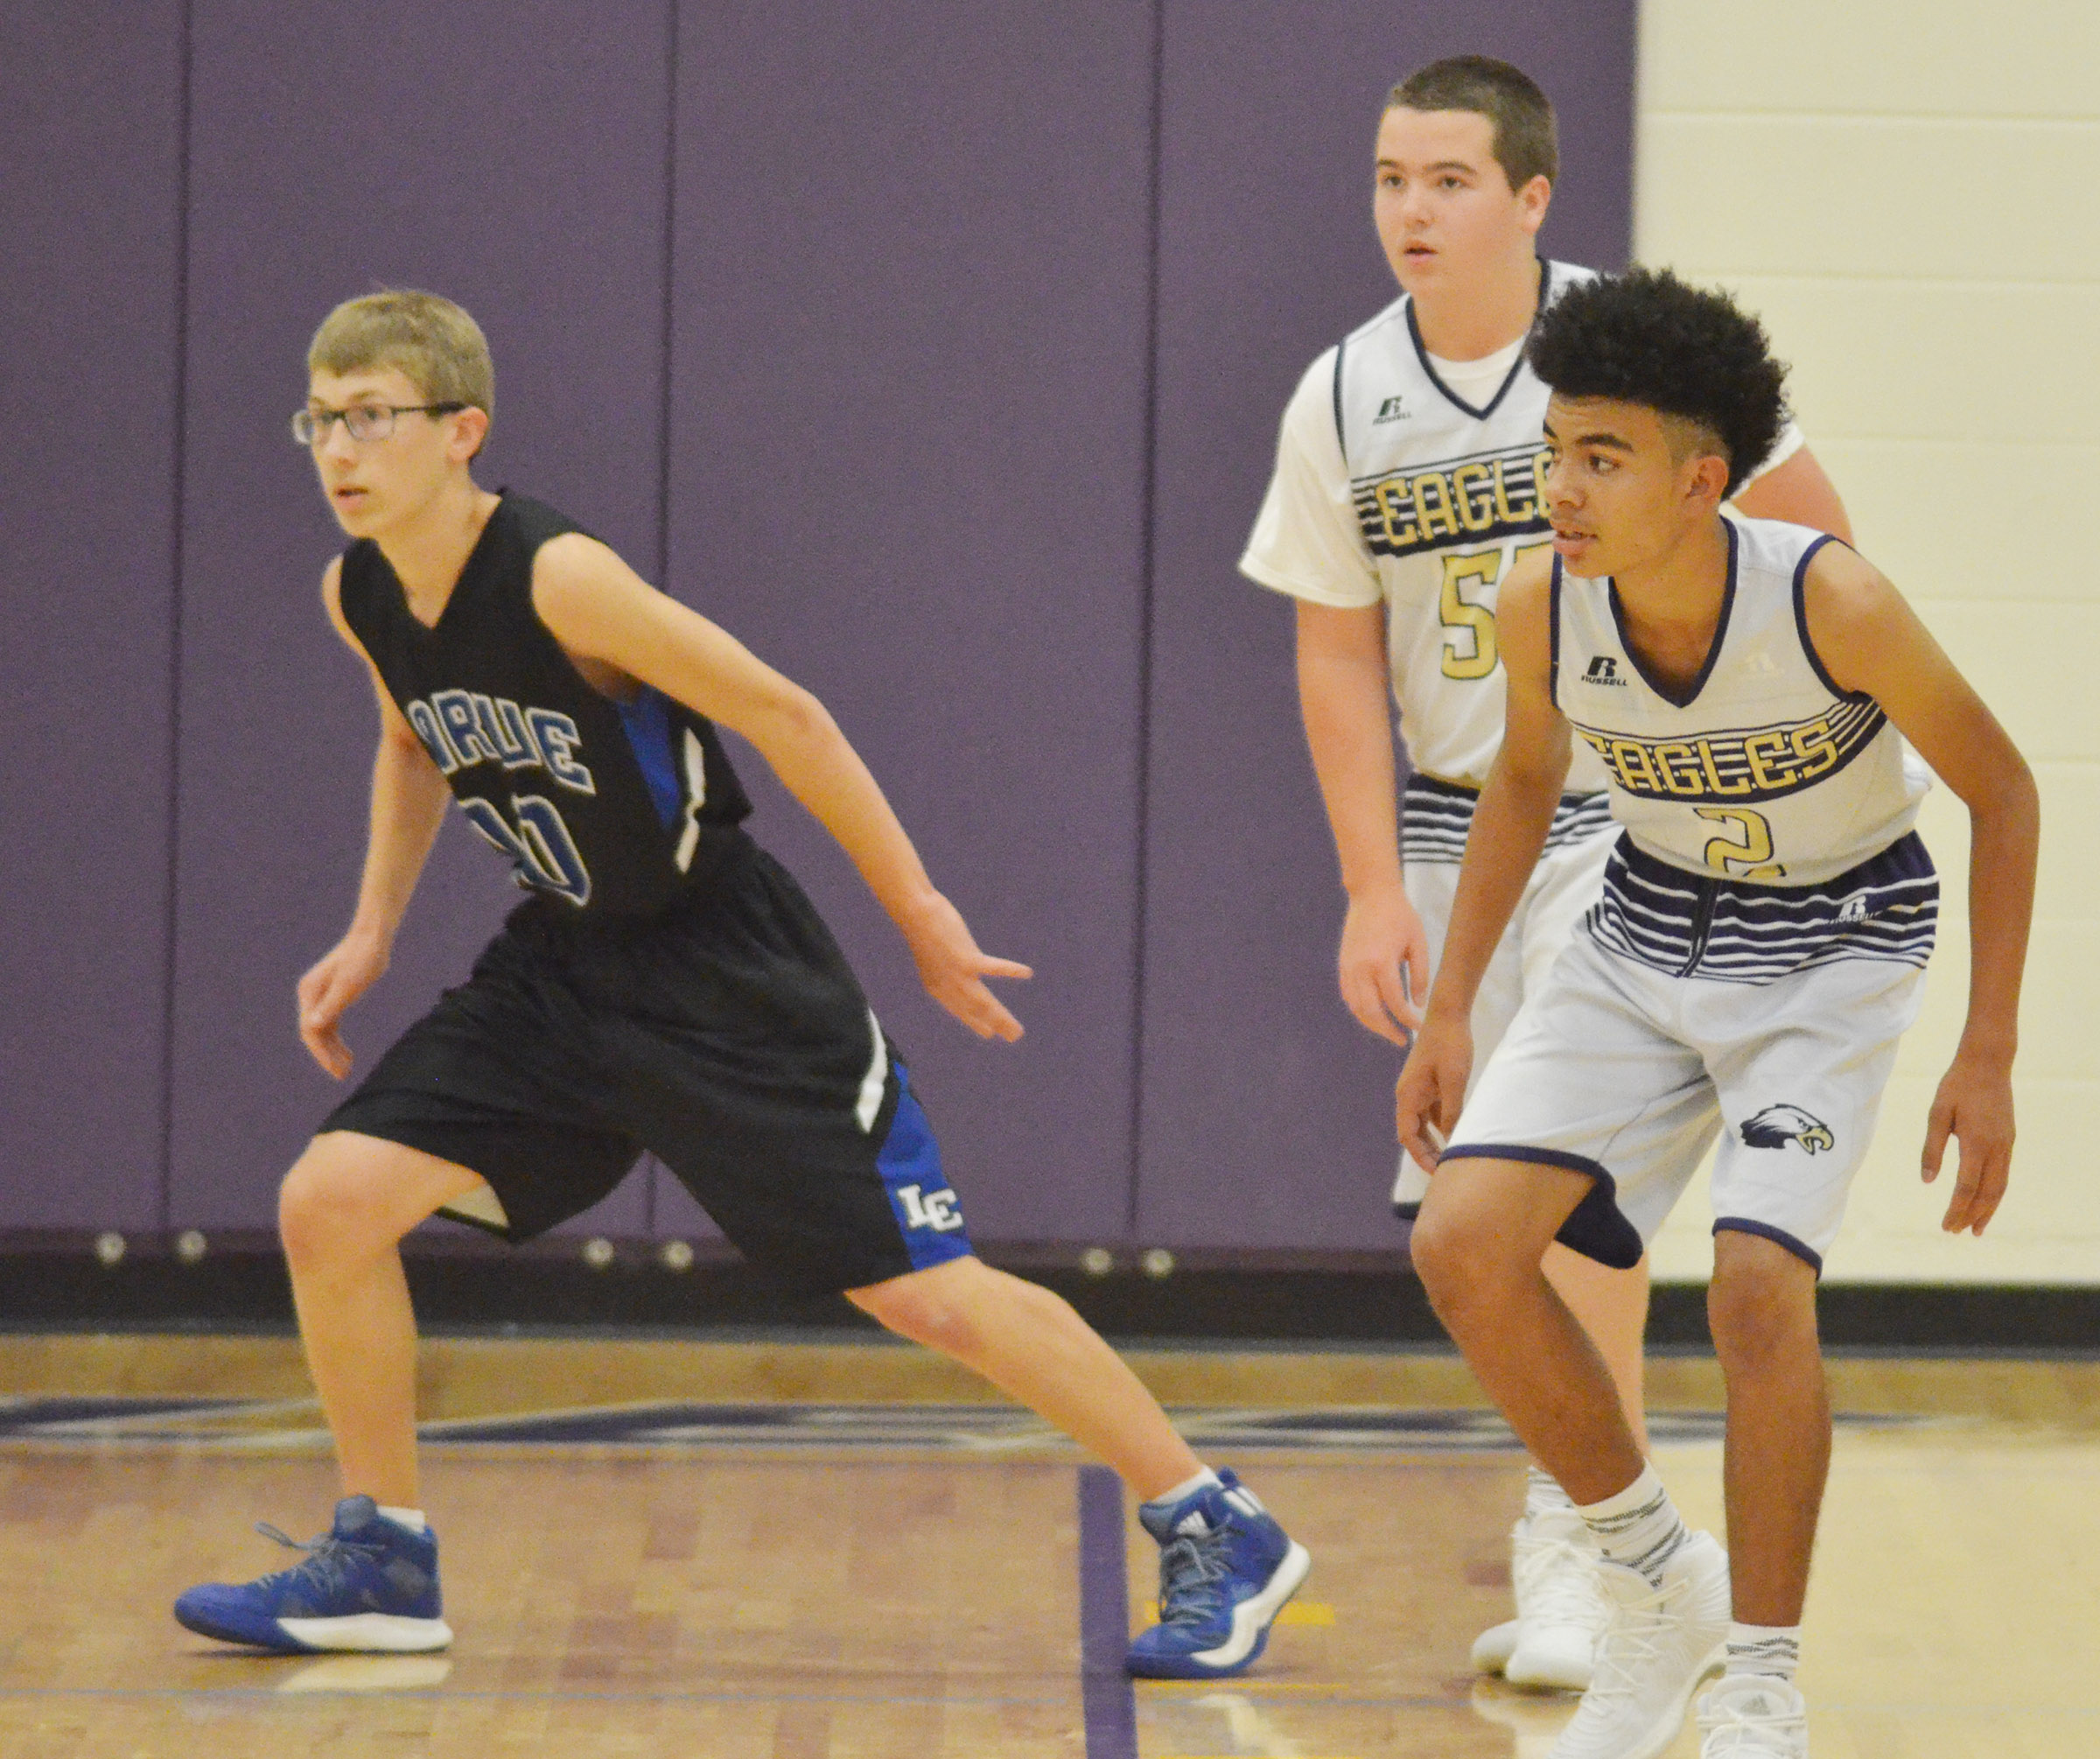 CMS eighth-graders Jack Sabo, at left, and Adrien Smith play defense.